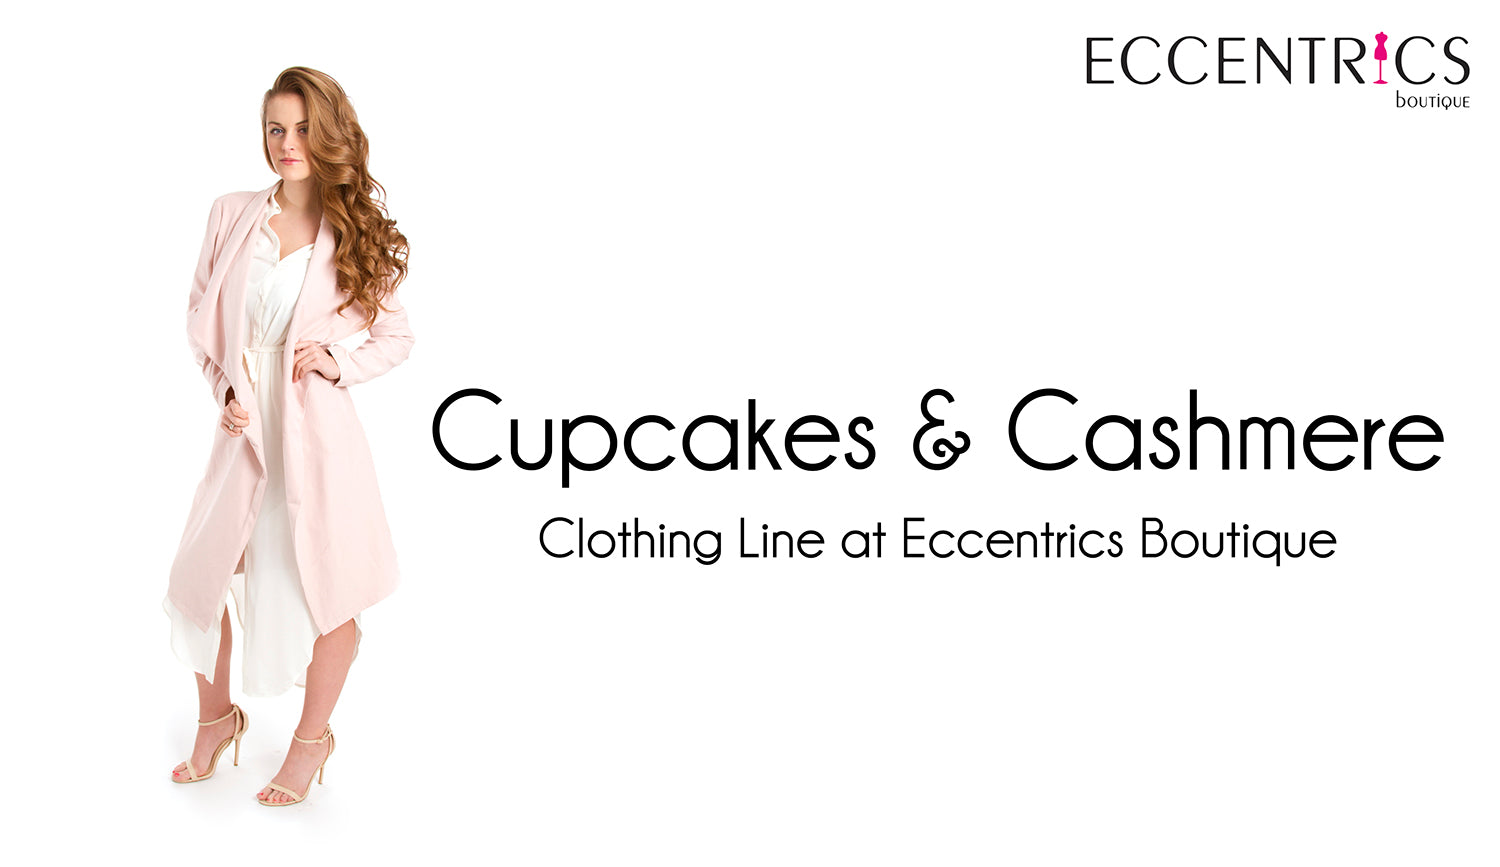 cupcakes & cashmere clothing line sold exclusively at Eccentrics Boutique